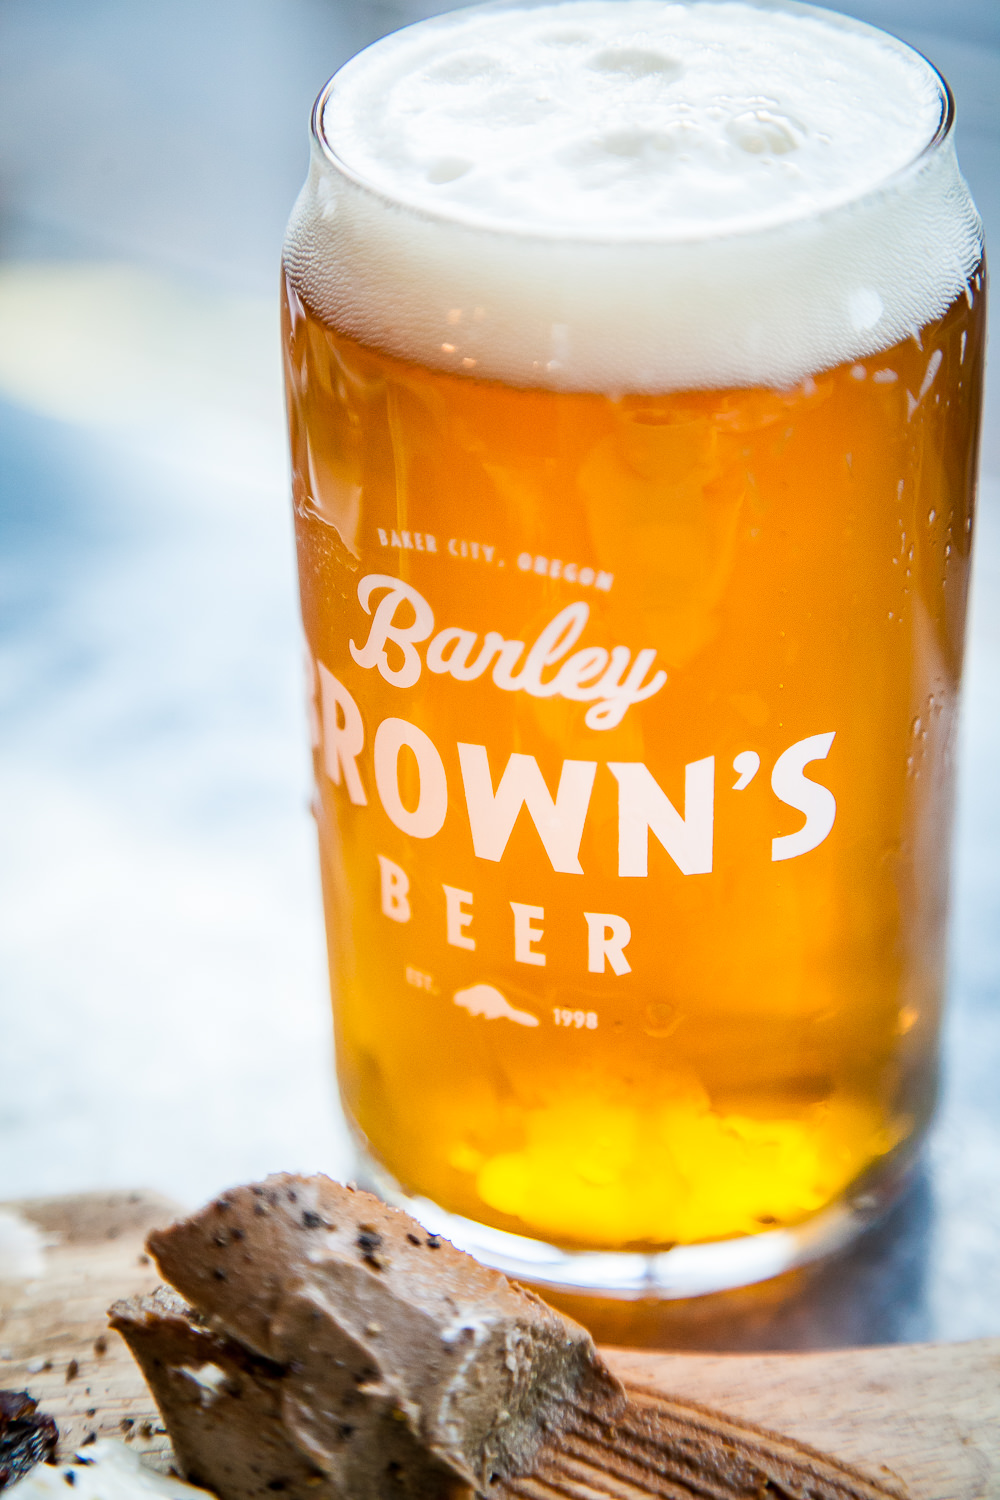 Barley Brown. Pallet Jack IPA. OR